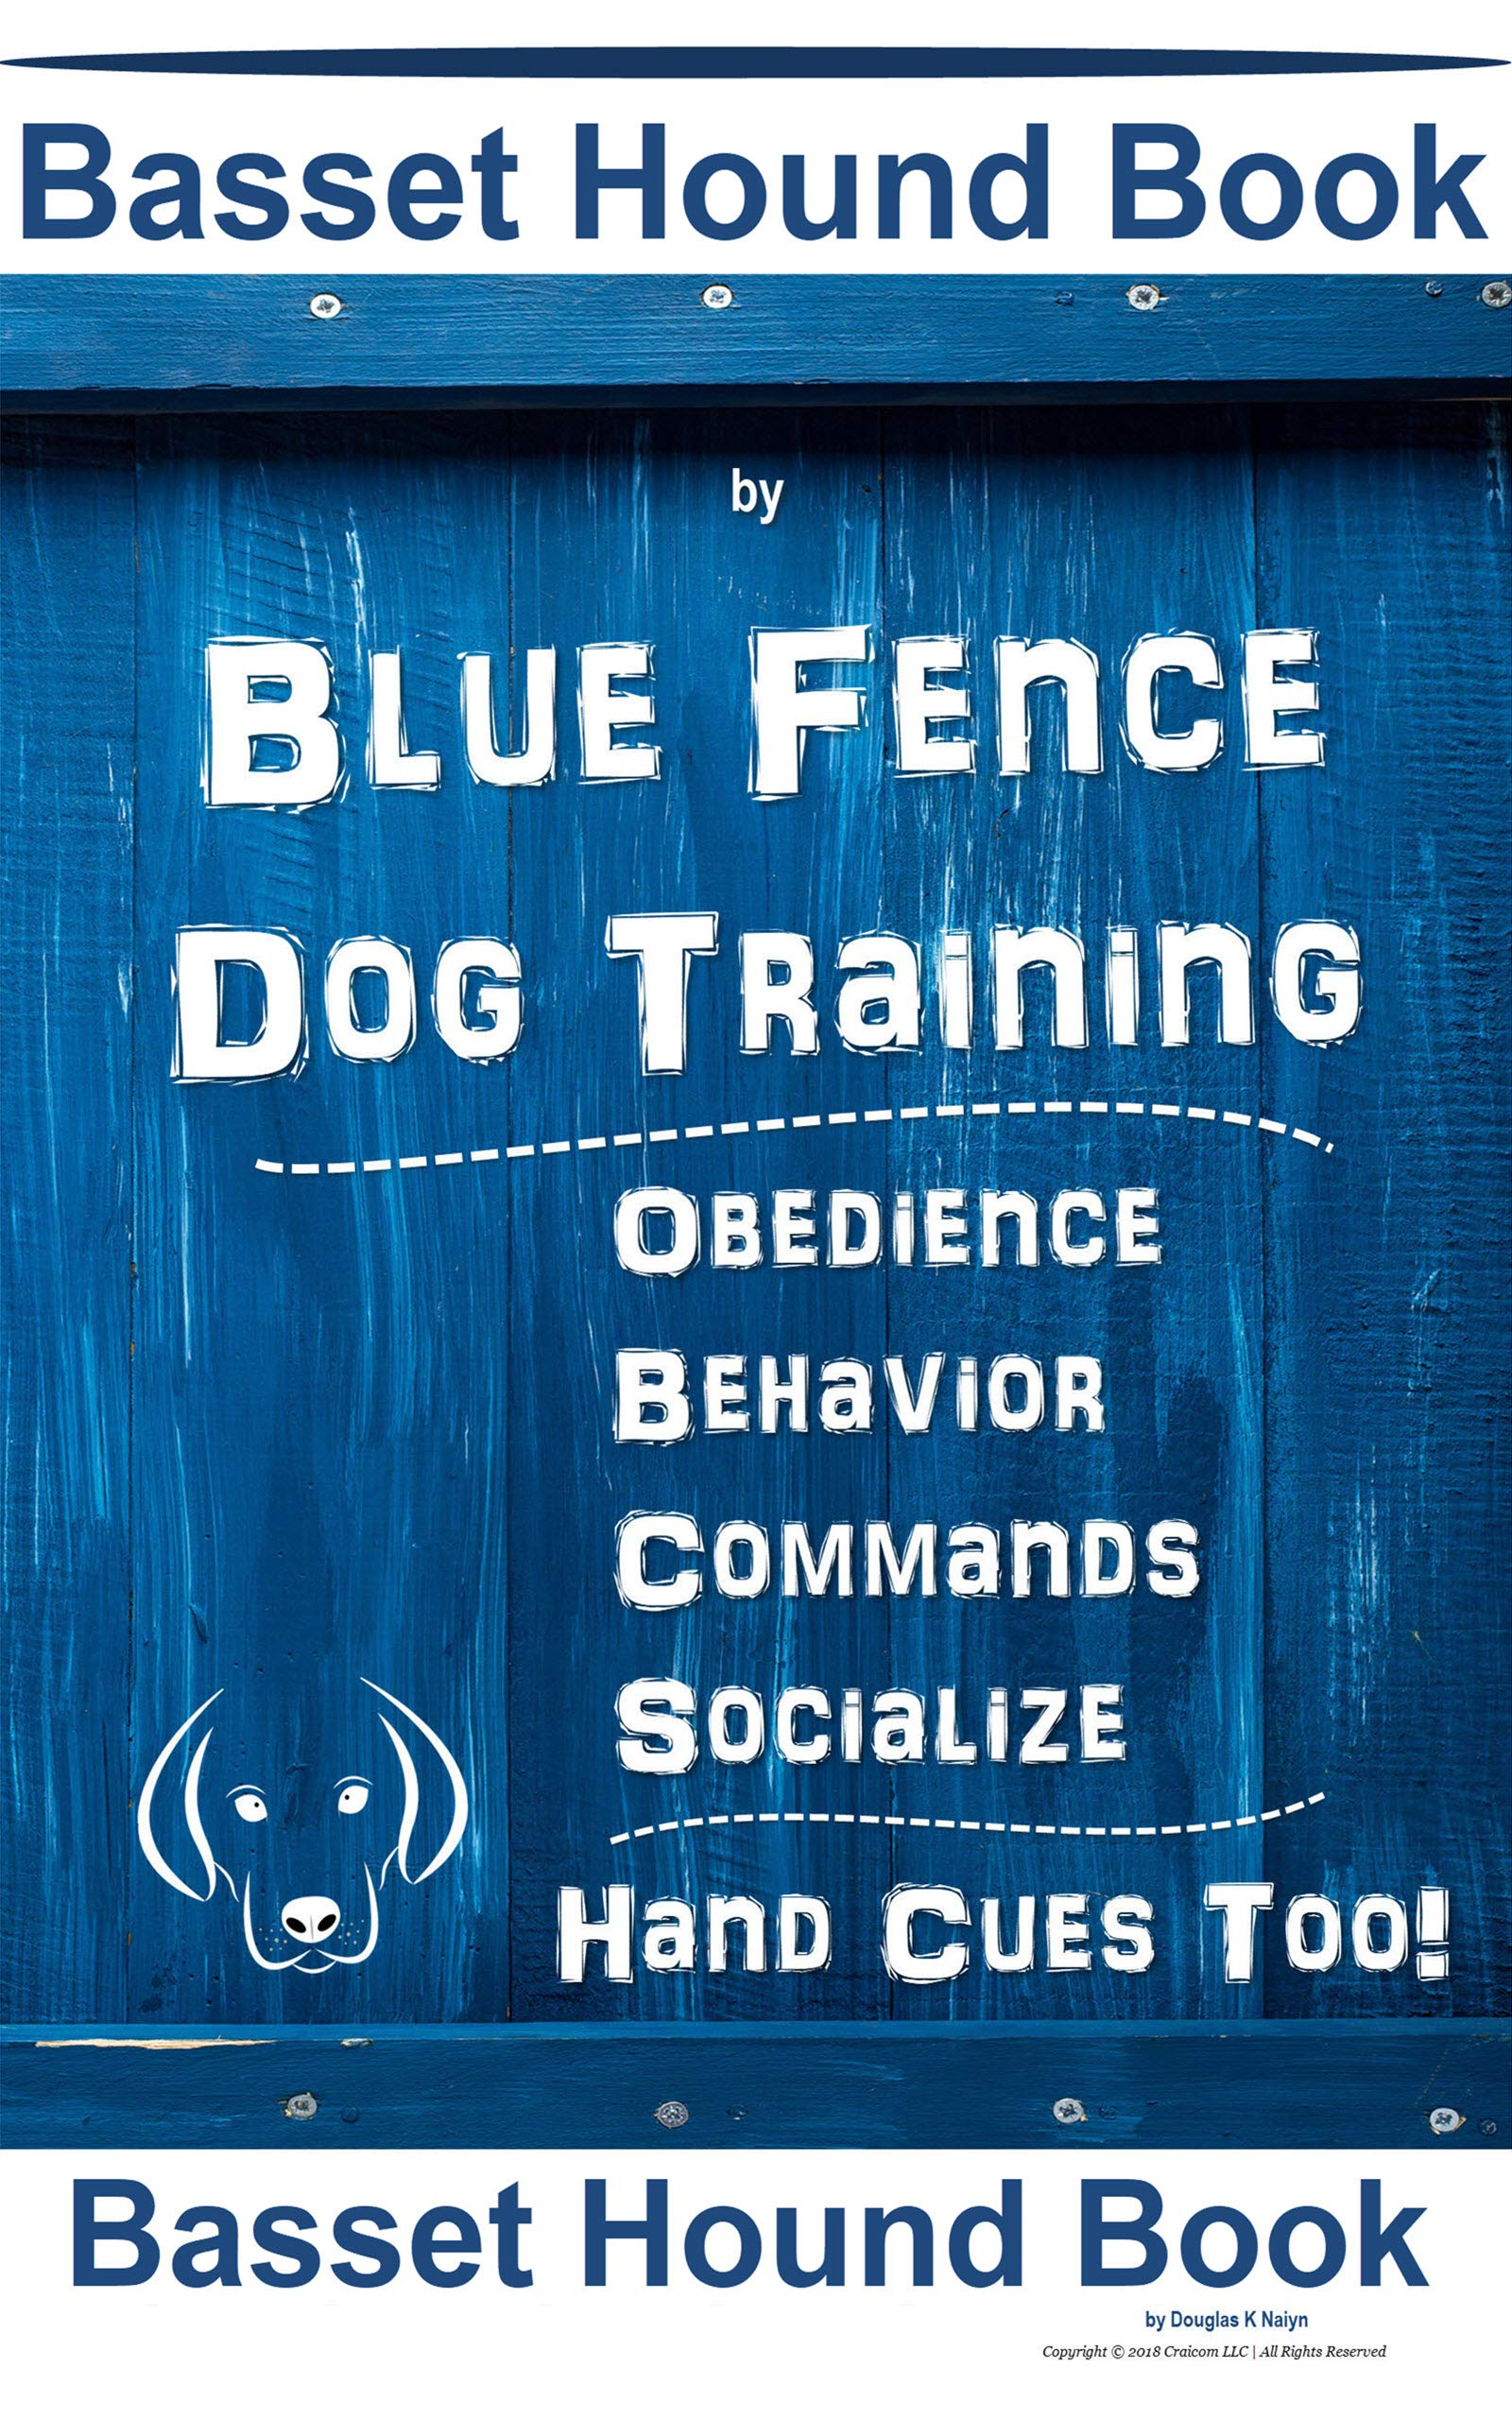 Basset Hound Book By Blue Fence Dog Training Obedience Behavior Commands Socialize Hand Cues Too! Basset Hound Book